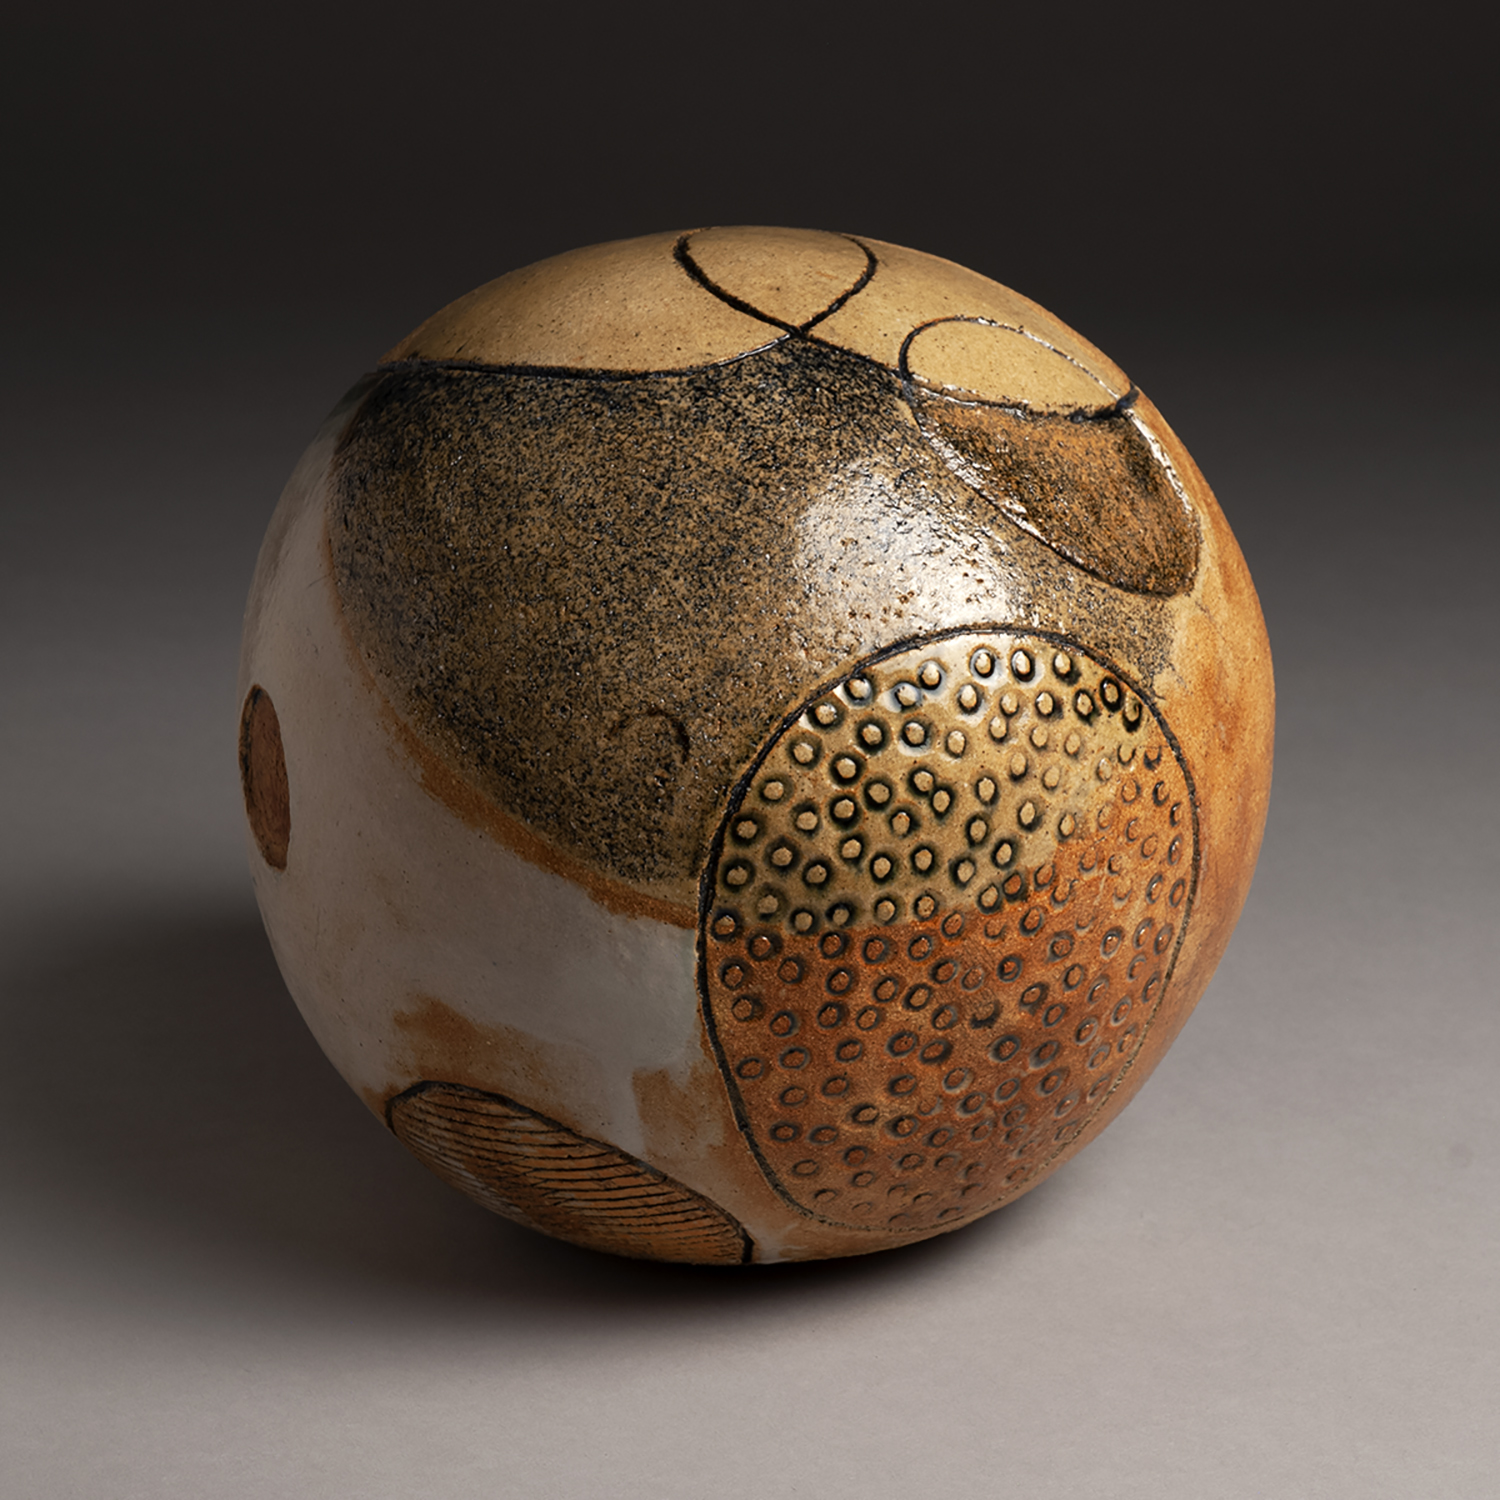 Helma af Klint, 2019, 14x14x14 inches, clay and glaze